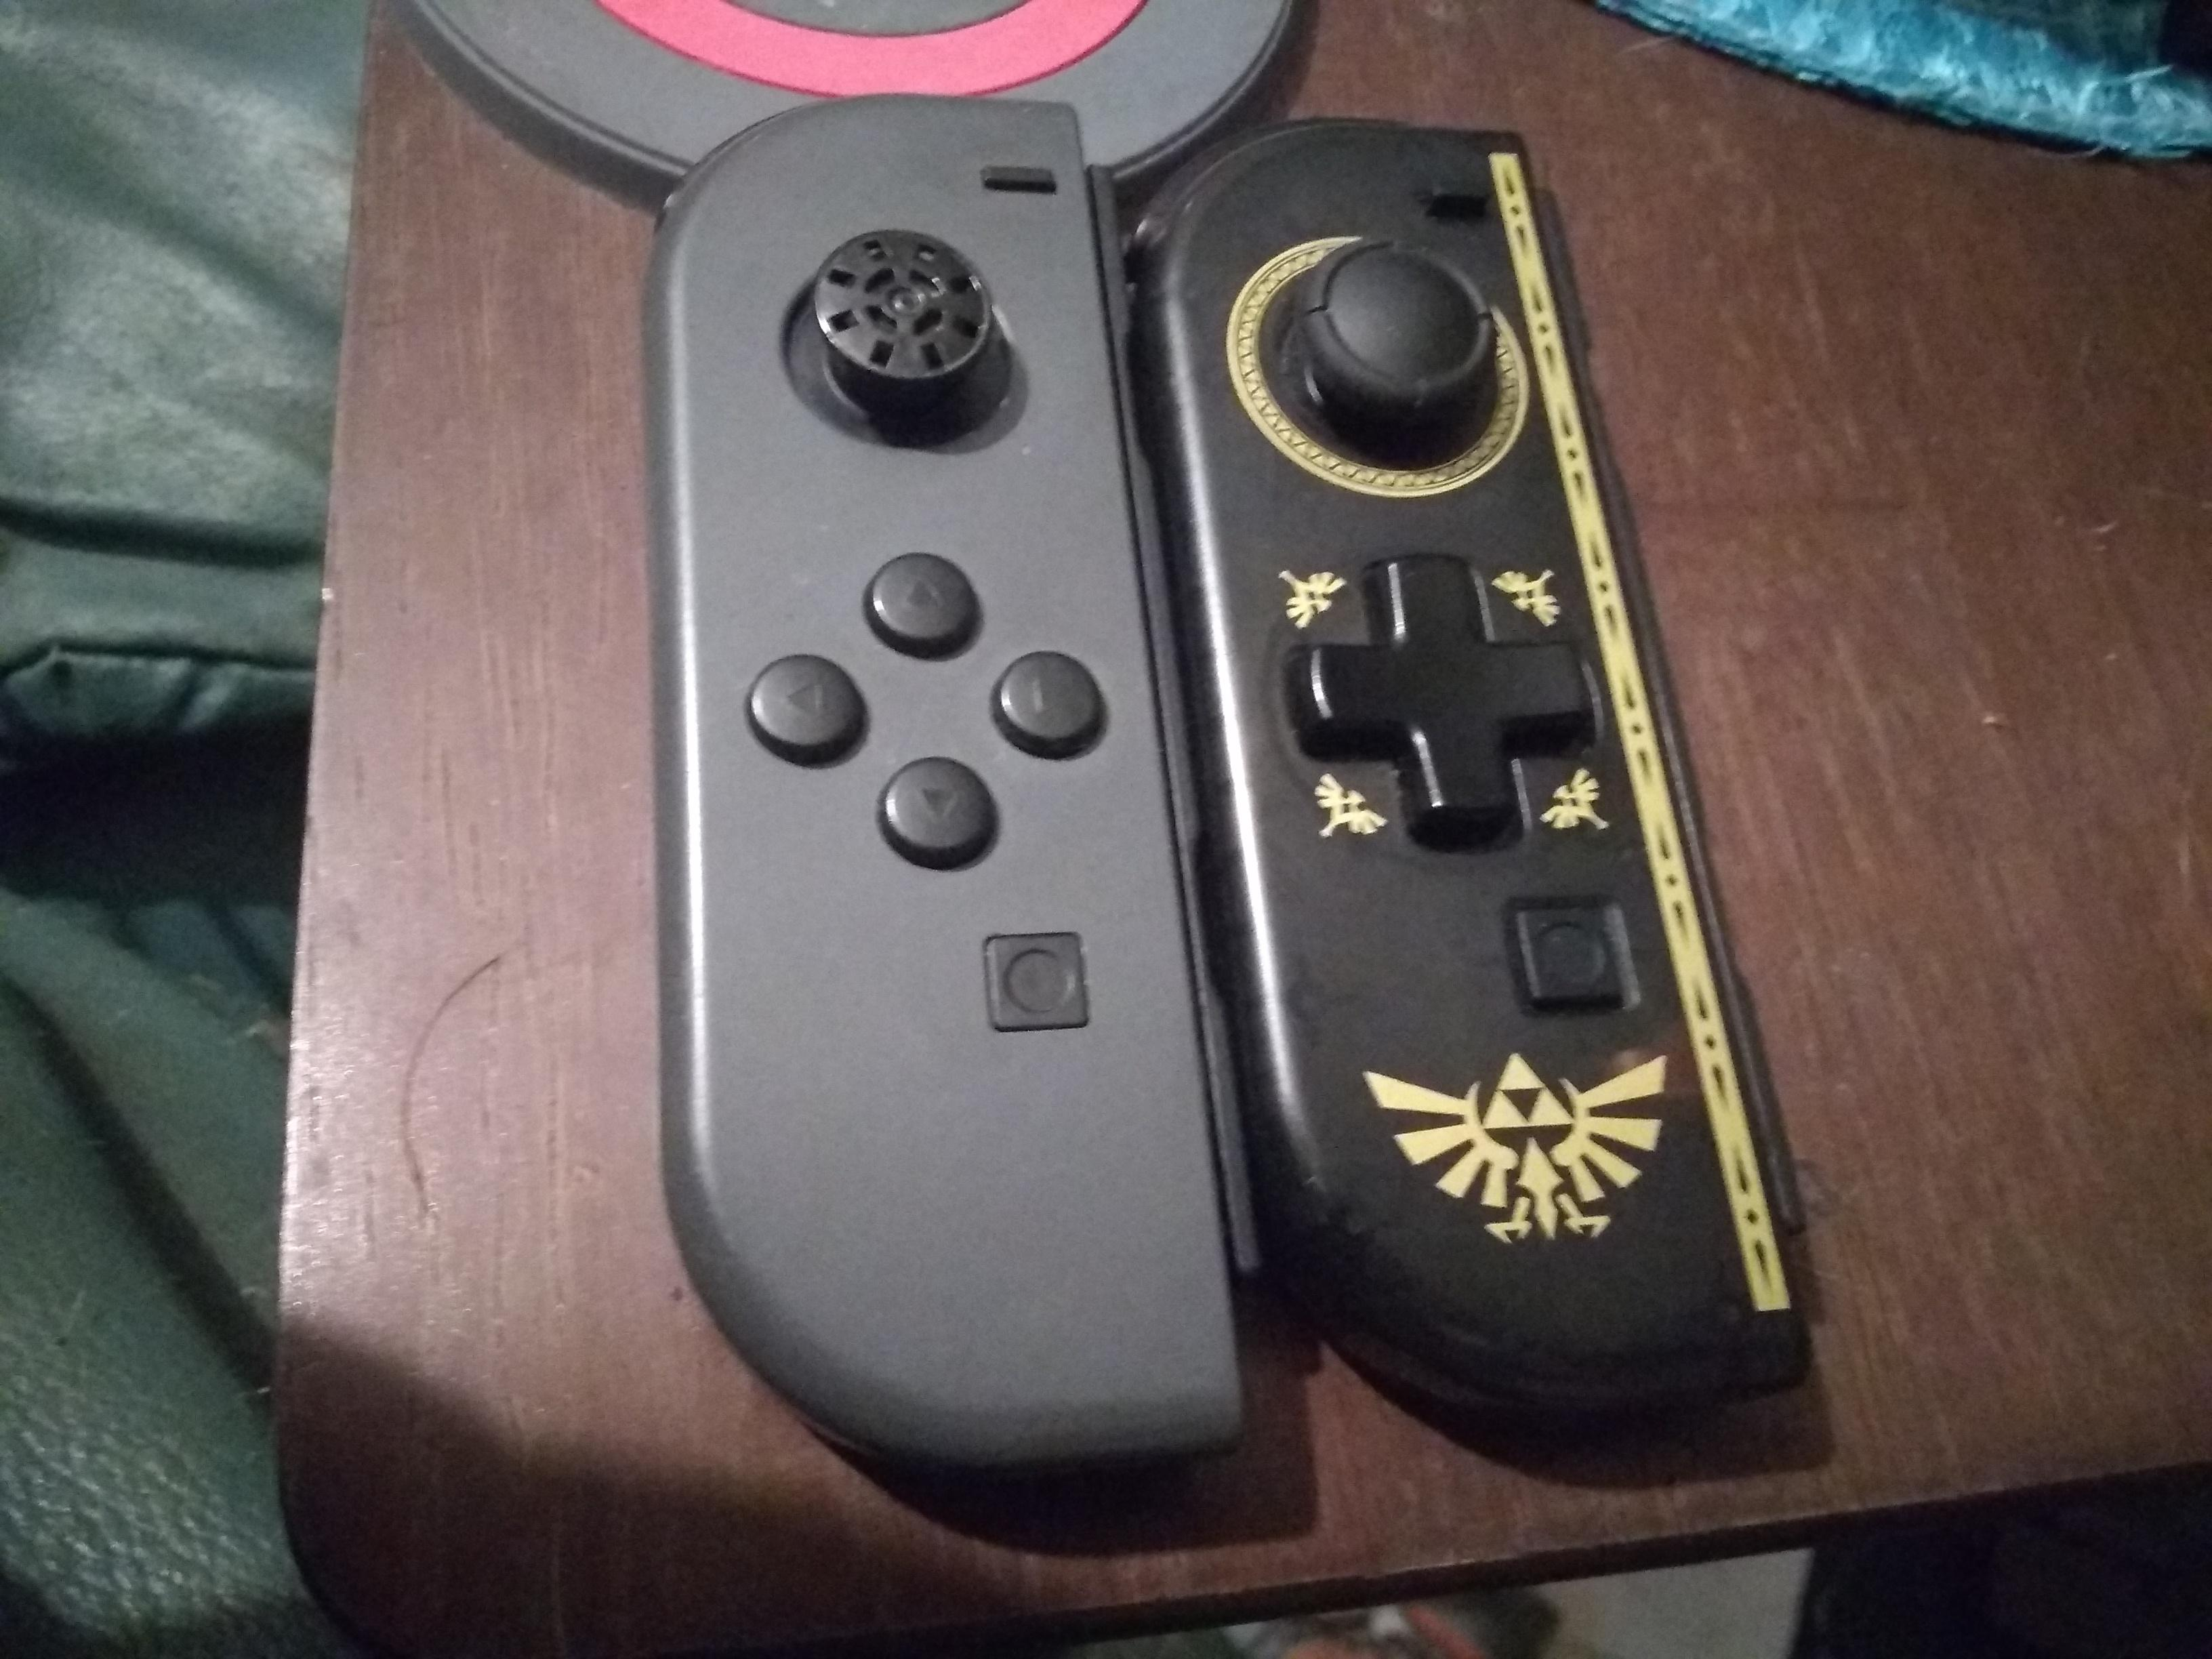 Could the shell of Hori D-pad Joy-con House the components of an official Joy-con? : NintendoSwitch